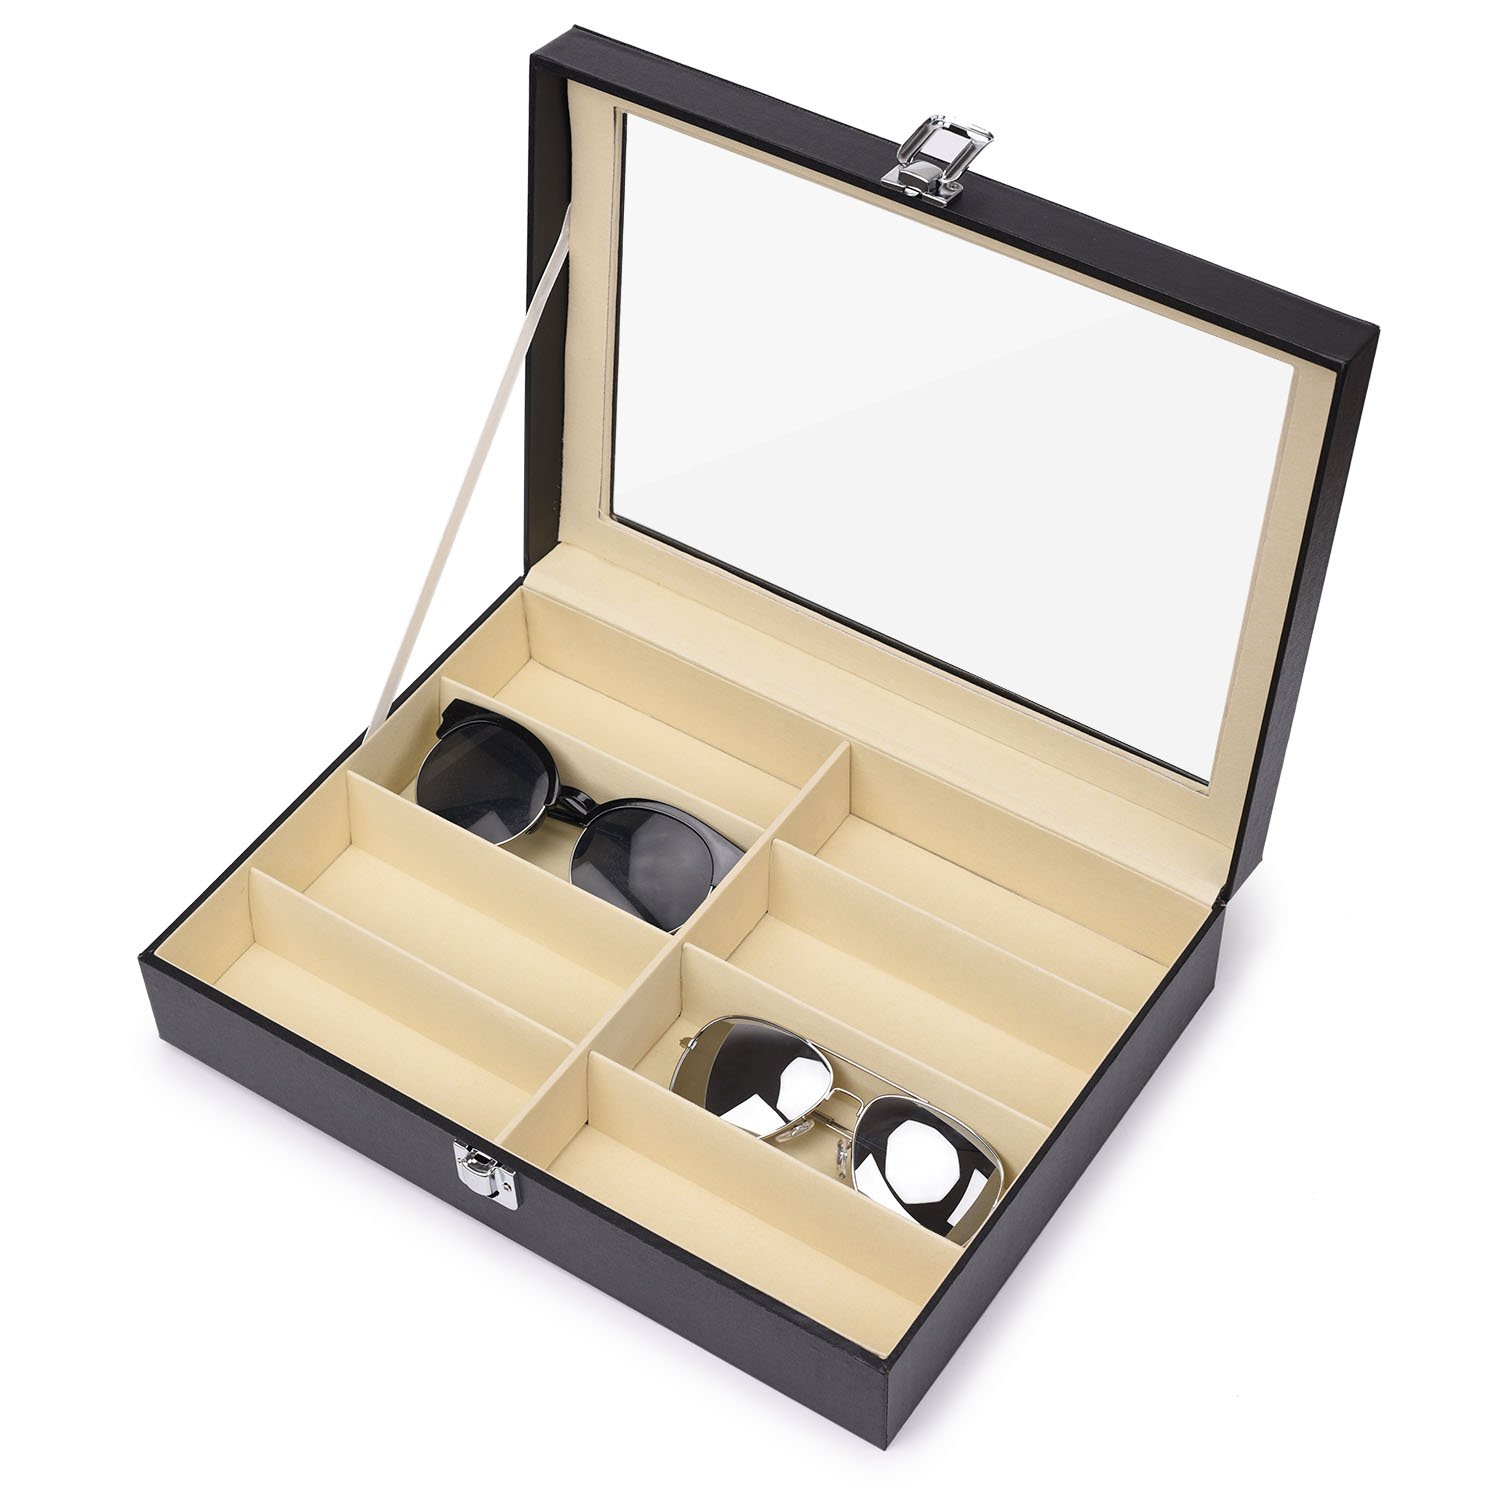 Juns Sunglasses Eyeglass Organizer, 8 Slots PU Leather Eyewear Storage Box Jewelry Display Case Watch Box with Glass Lid